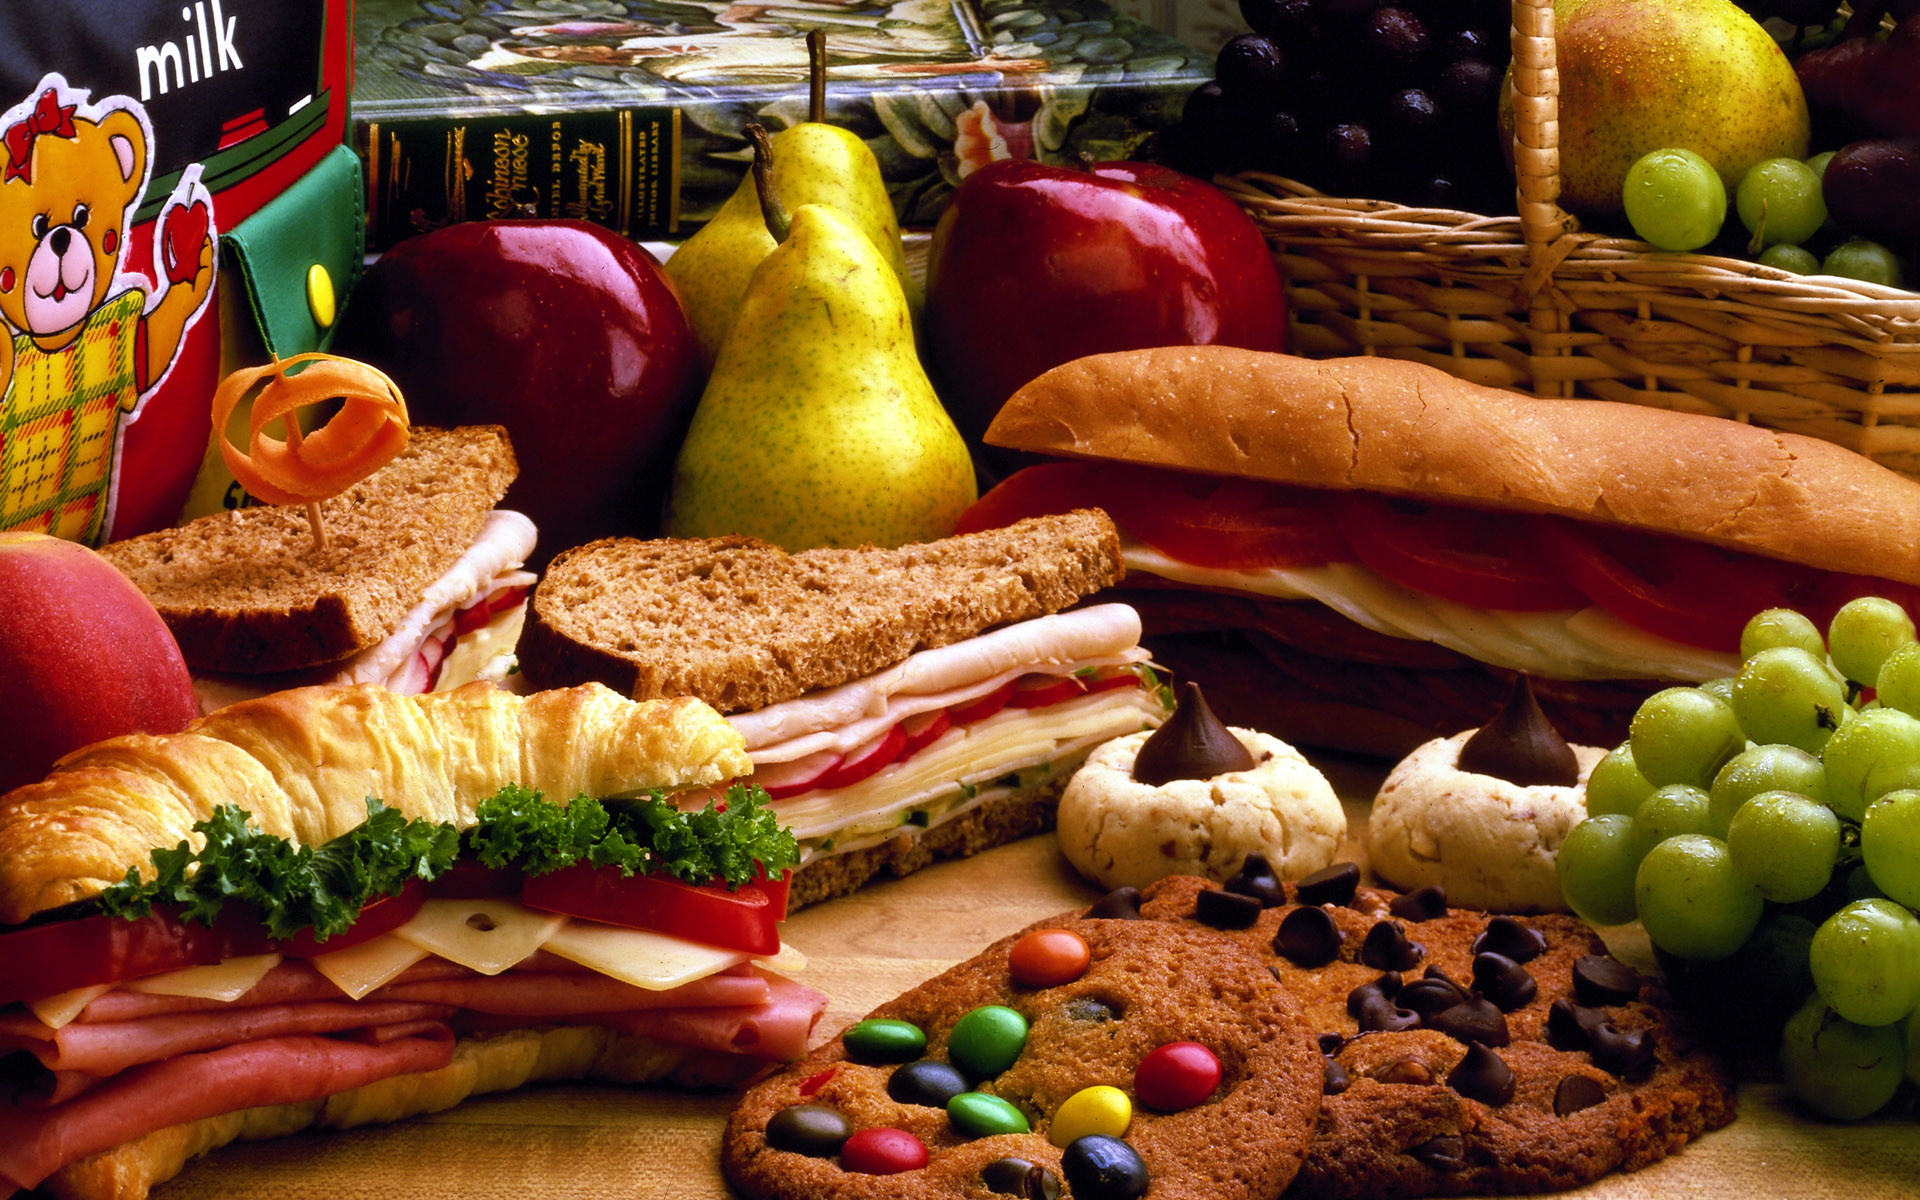 sandwiches food cookies bread grapes pears apples